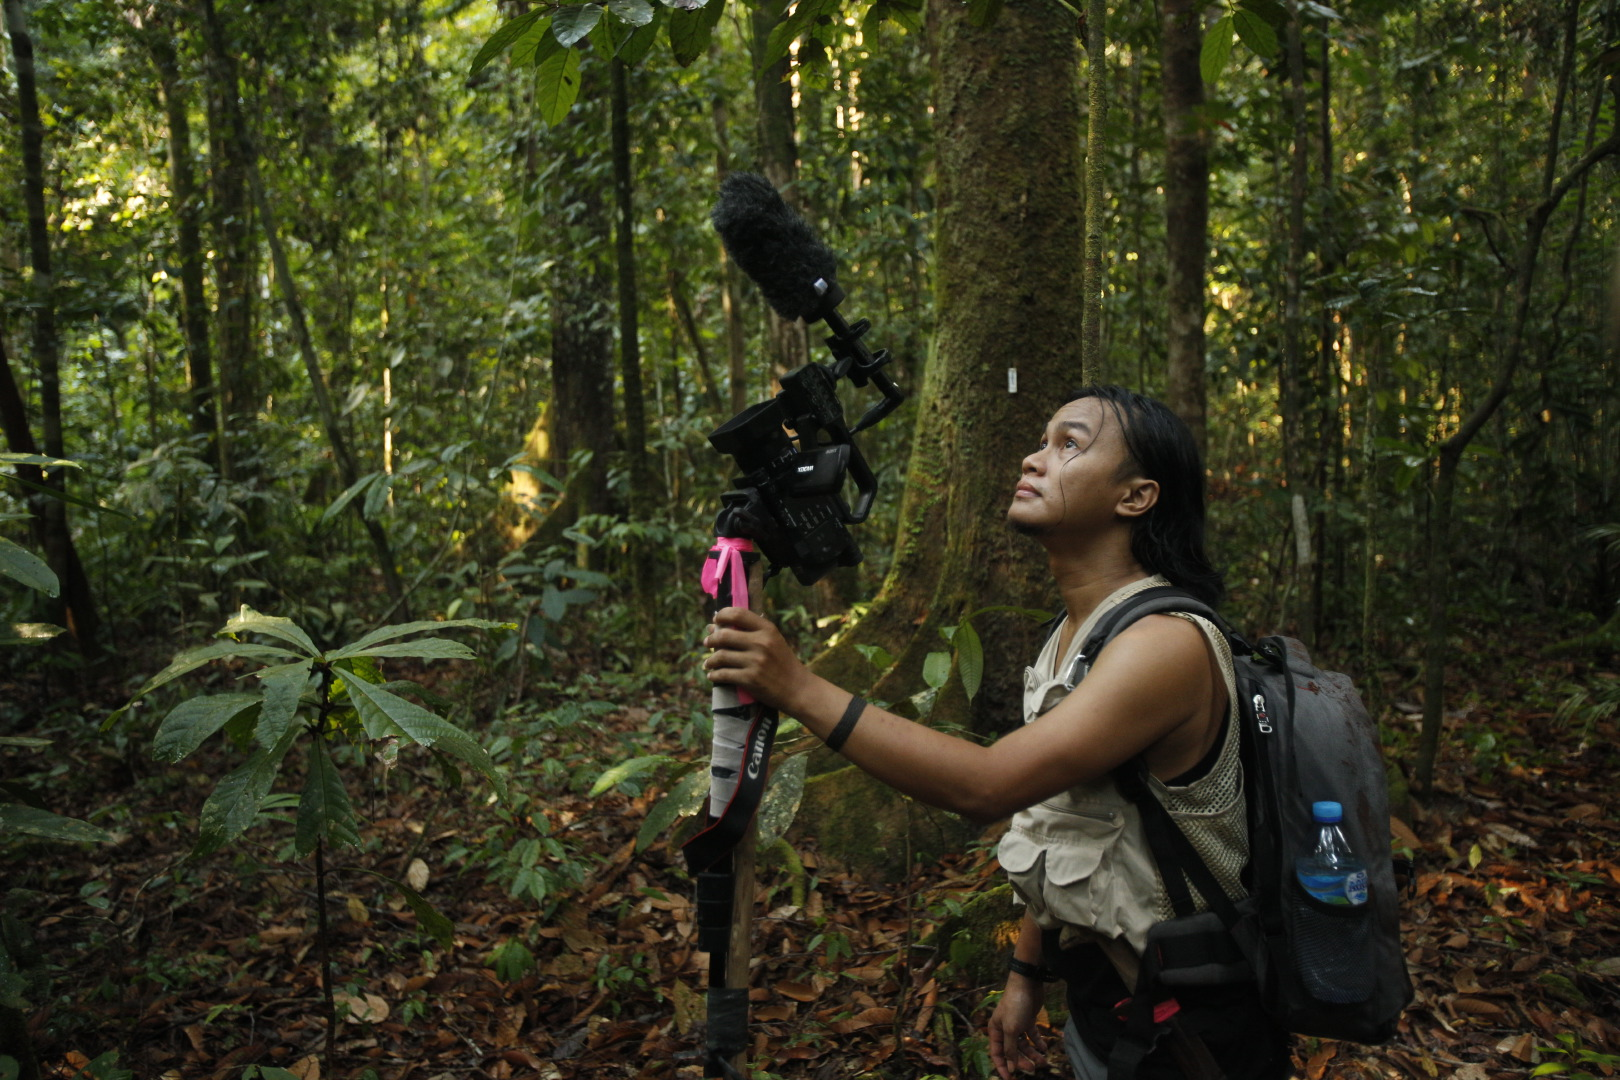 Research Director, Wahyu Susanto, demonstrates use of the stick monopod method for attaching a video camera, as he keeps a lookout for interesting orangutan behaviors to capture on film.